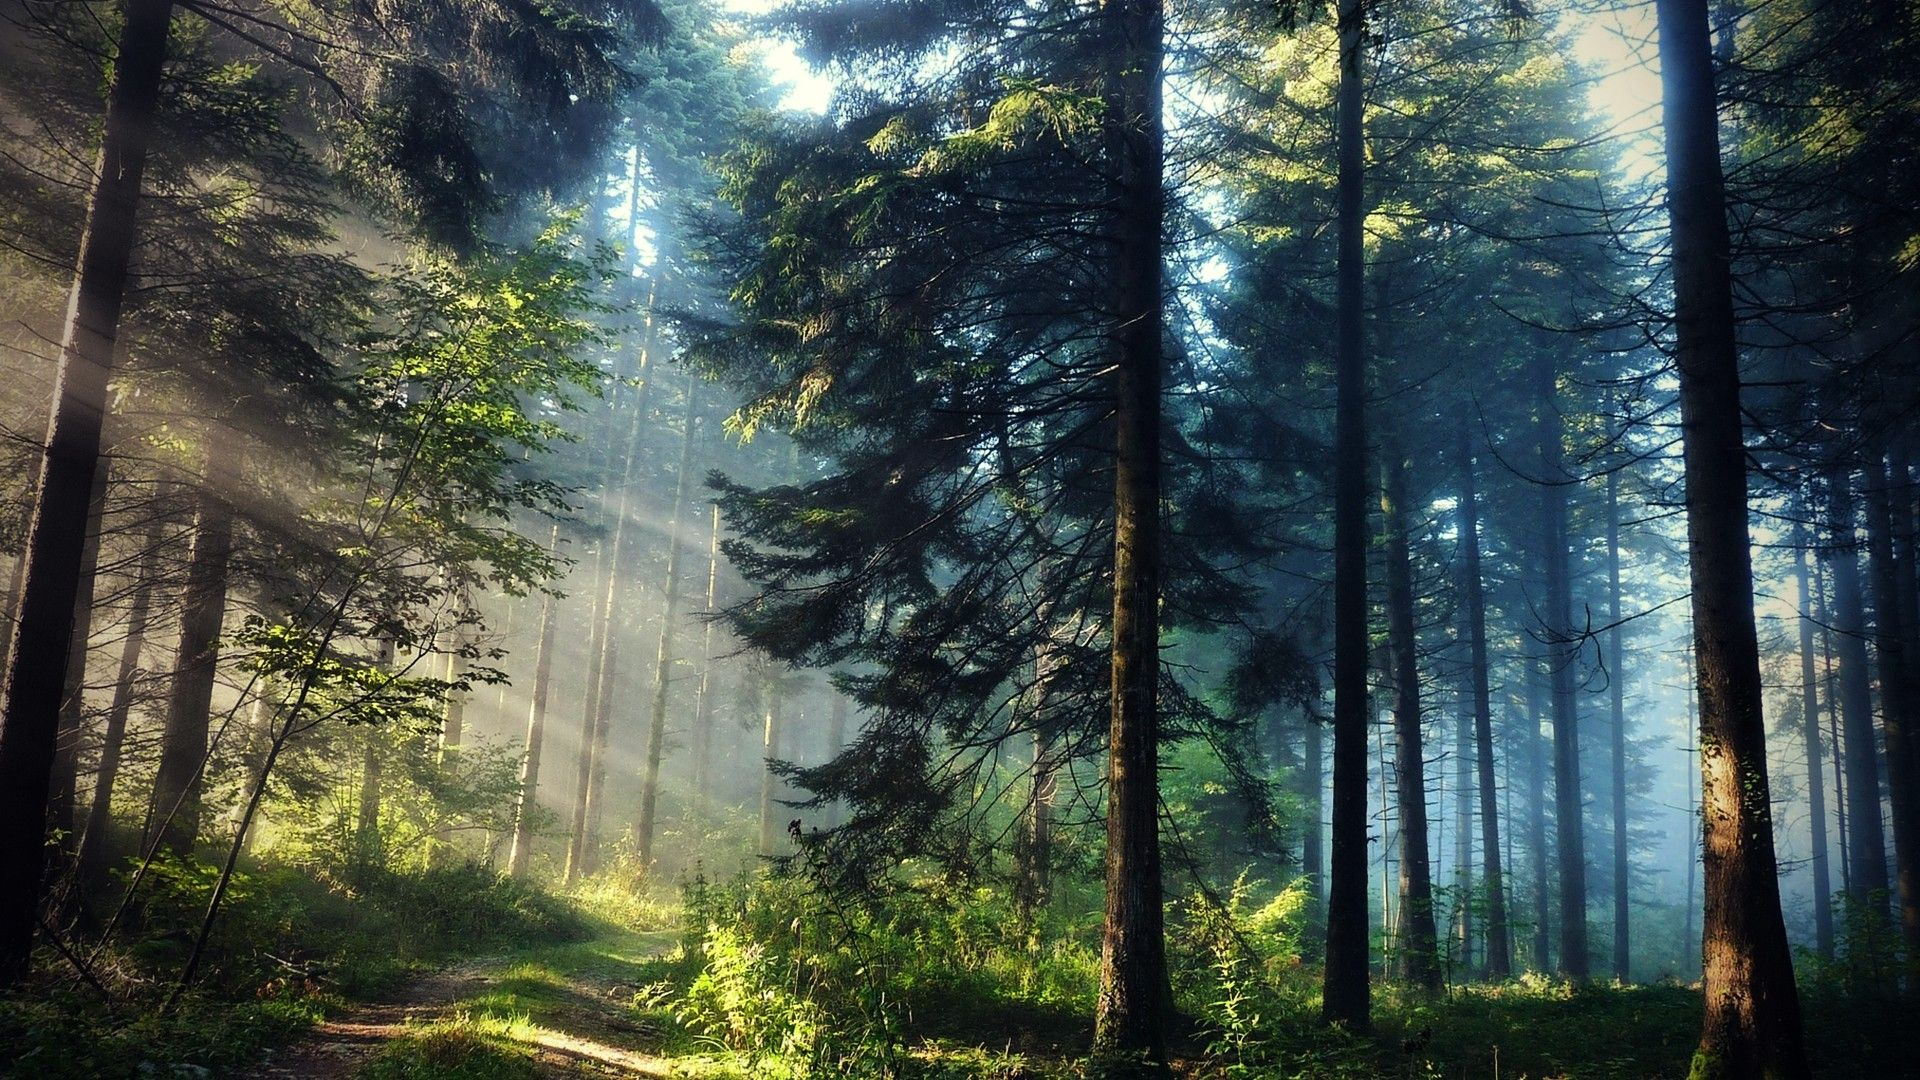 Sun ray through trees Forest wallpaper, Beautiful forest